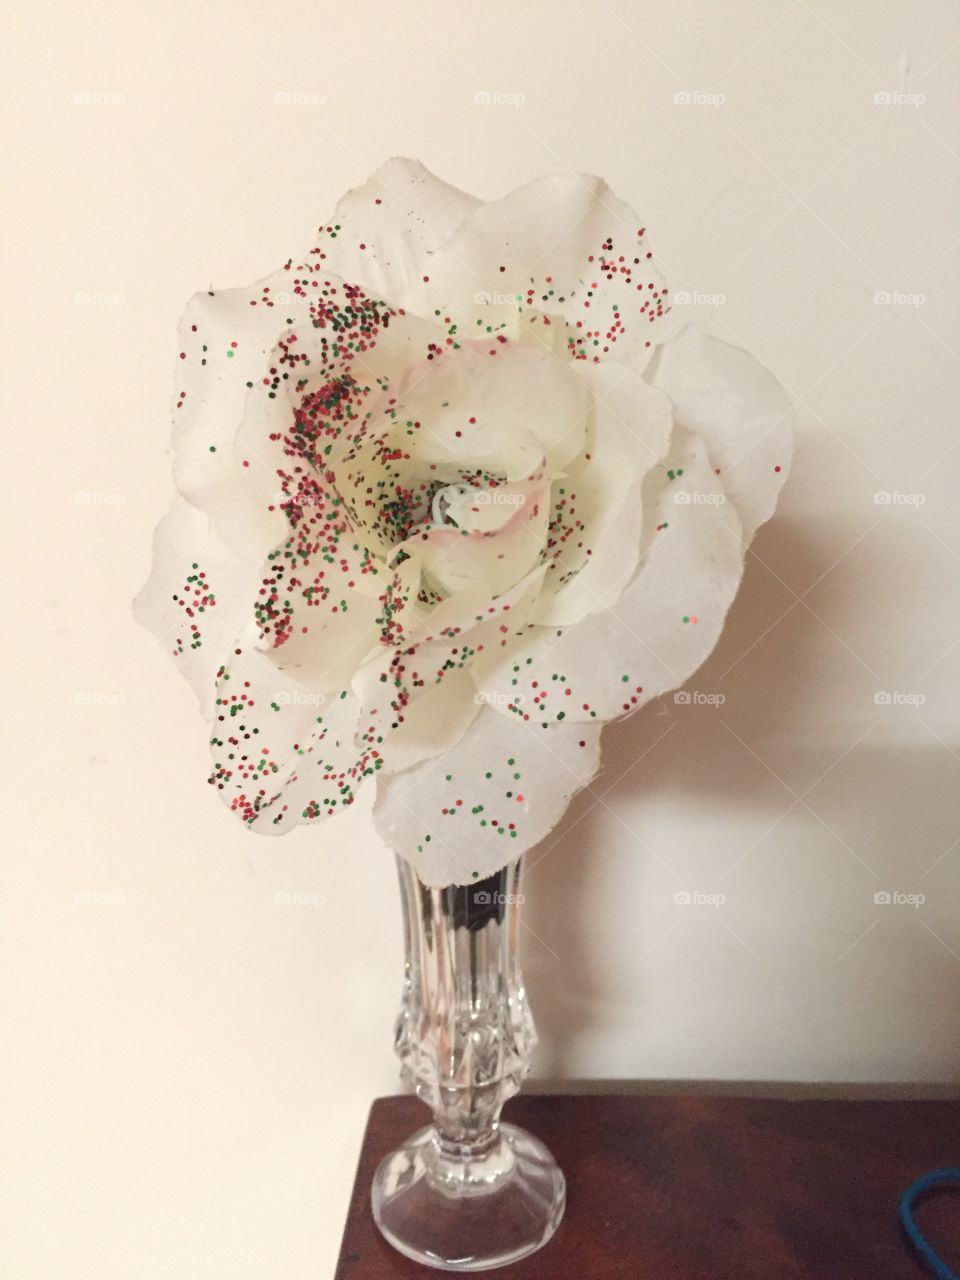 White rose with glitter in a glass vase